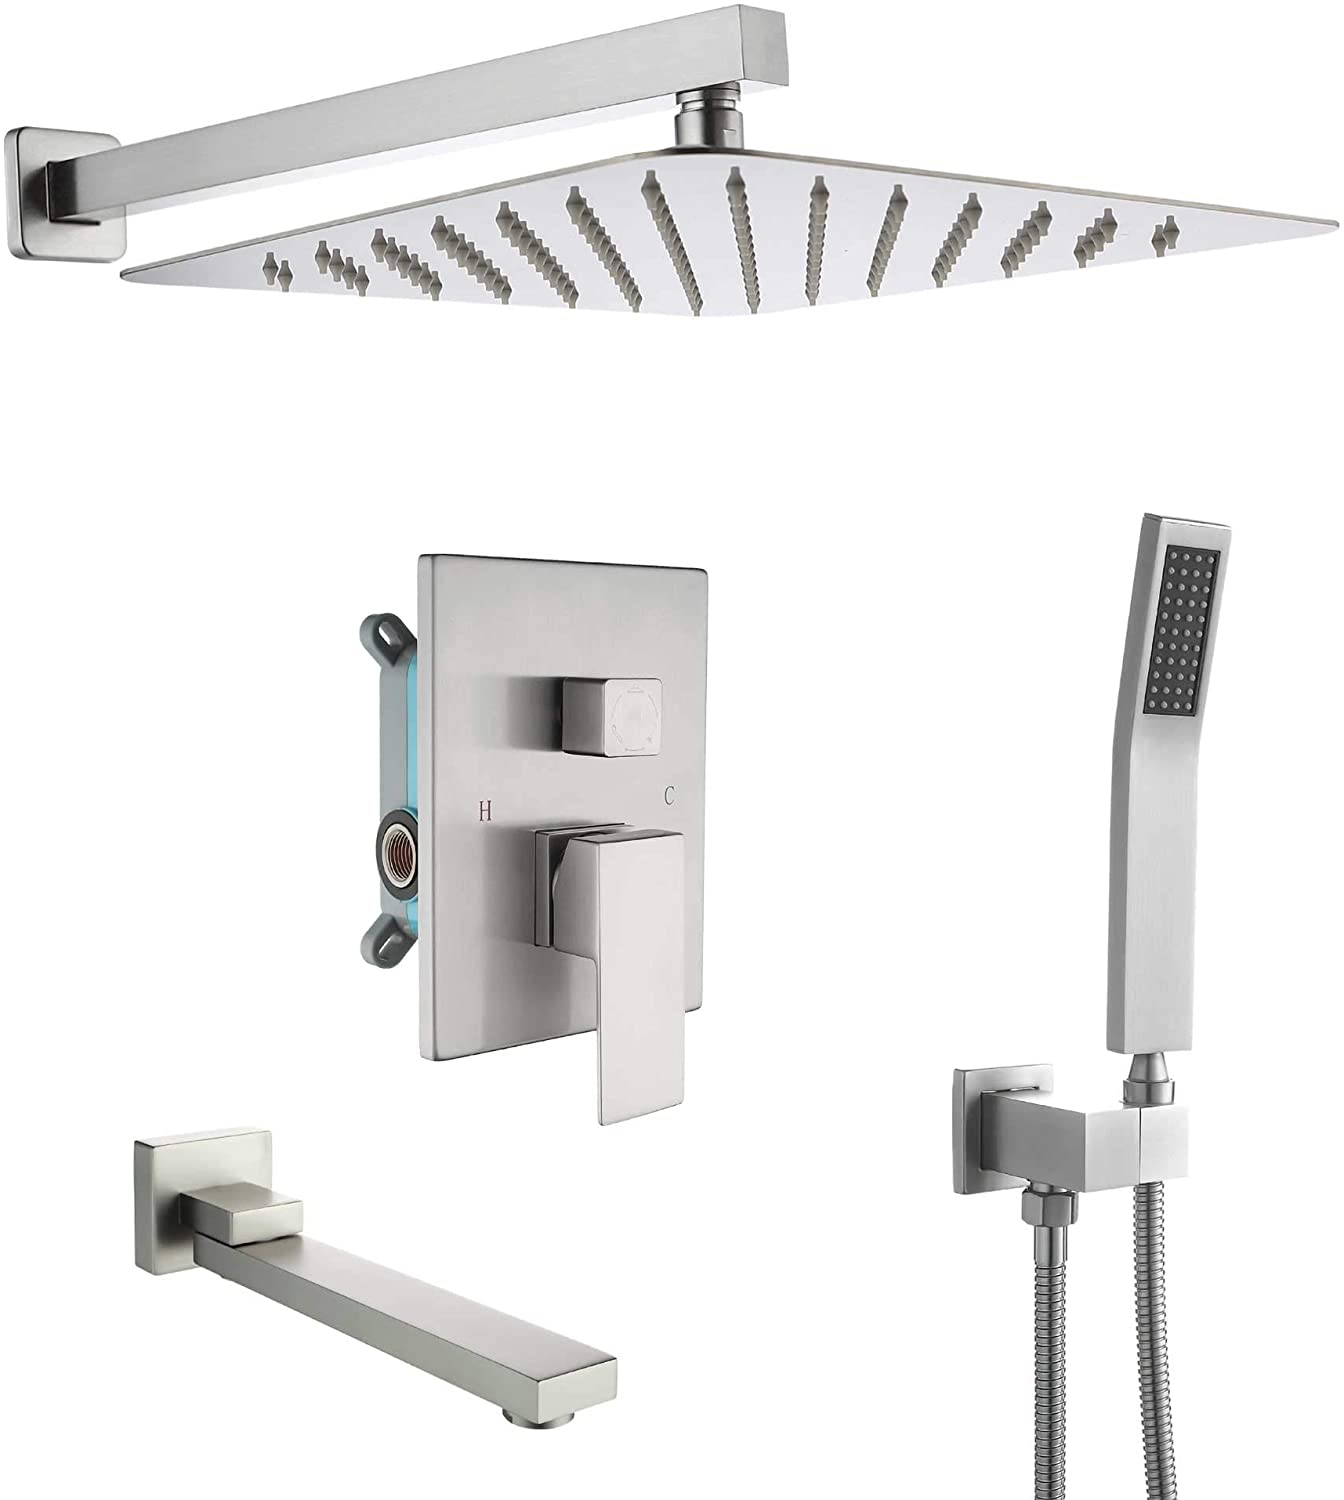 dobrass tub shower faucets set complete with pre embedded valve 10 inch square waterfall shower head system with handheld shower and tub spout